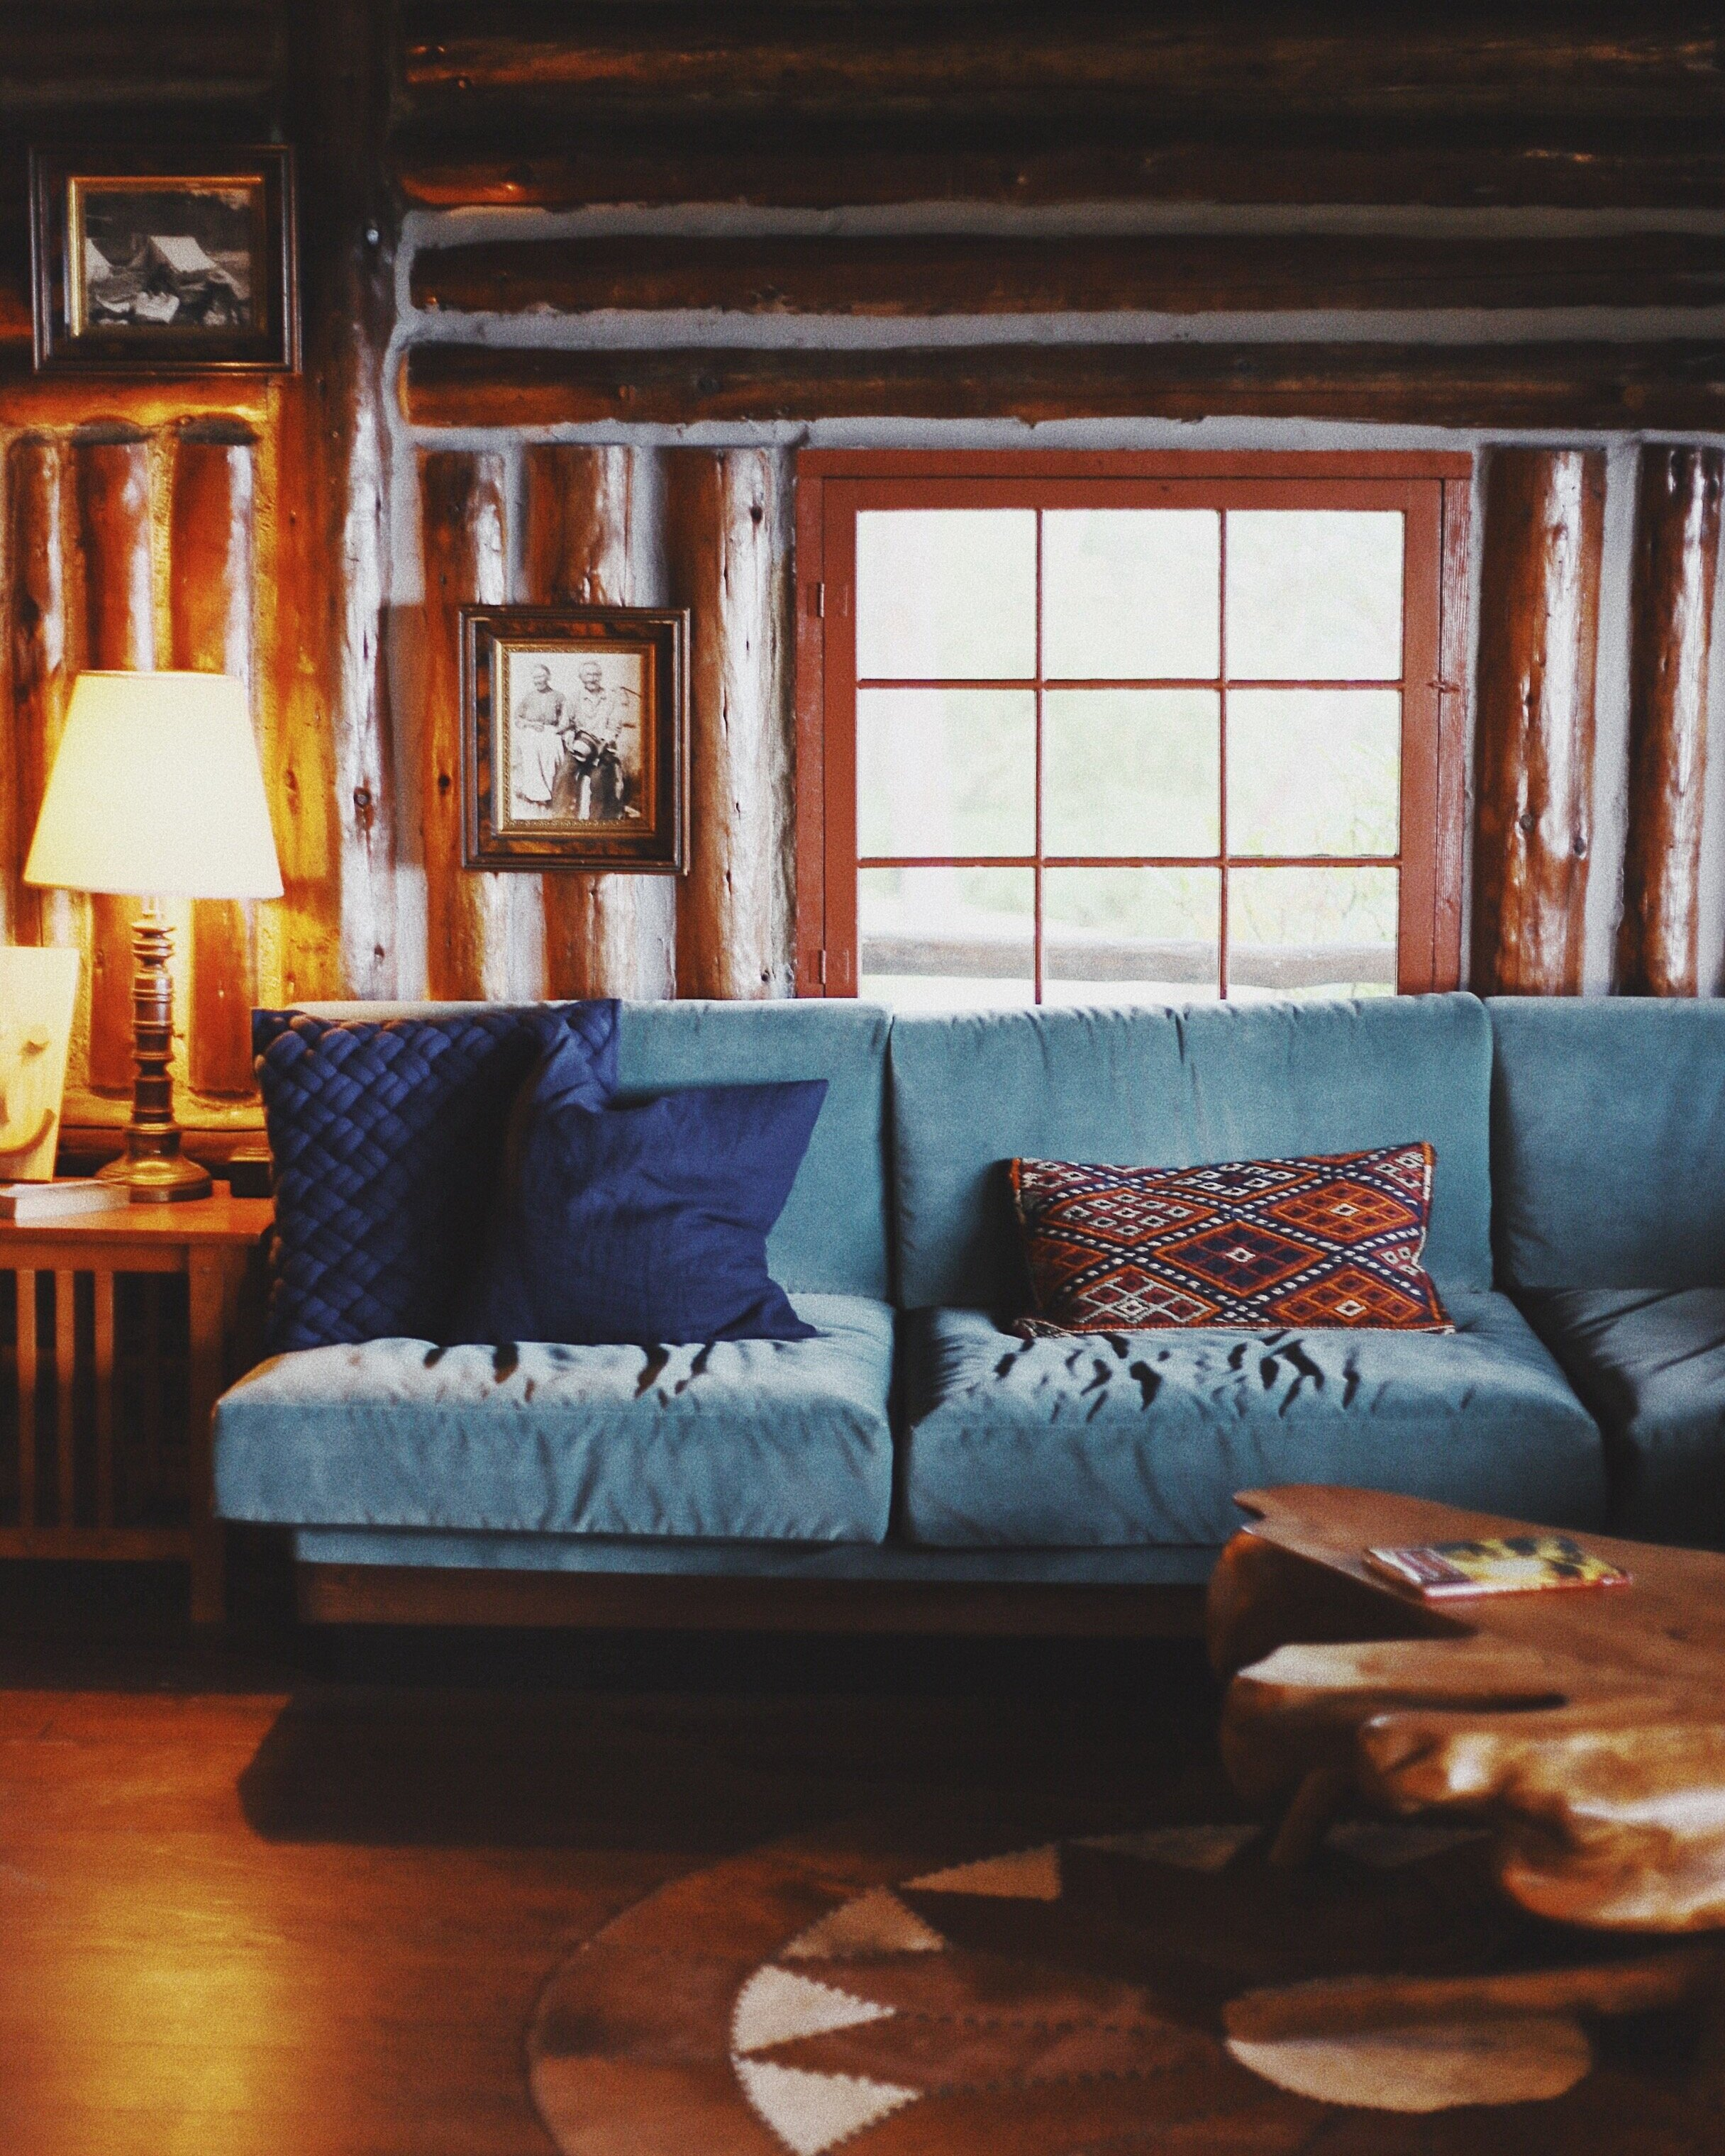 Next time I'm up on Whidbey I'd love to stay at Captain Whidbey. Love their rustic style!